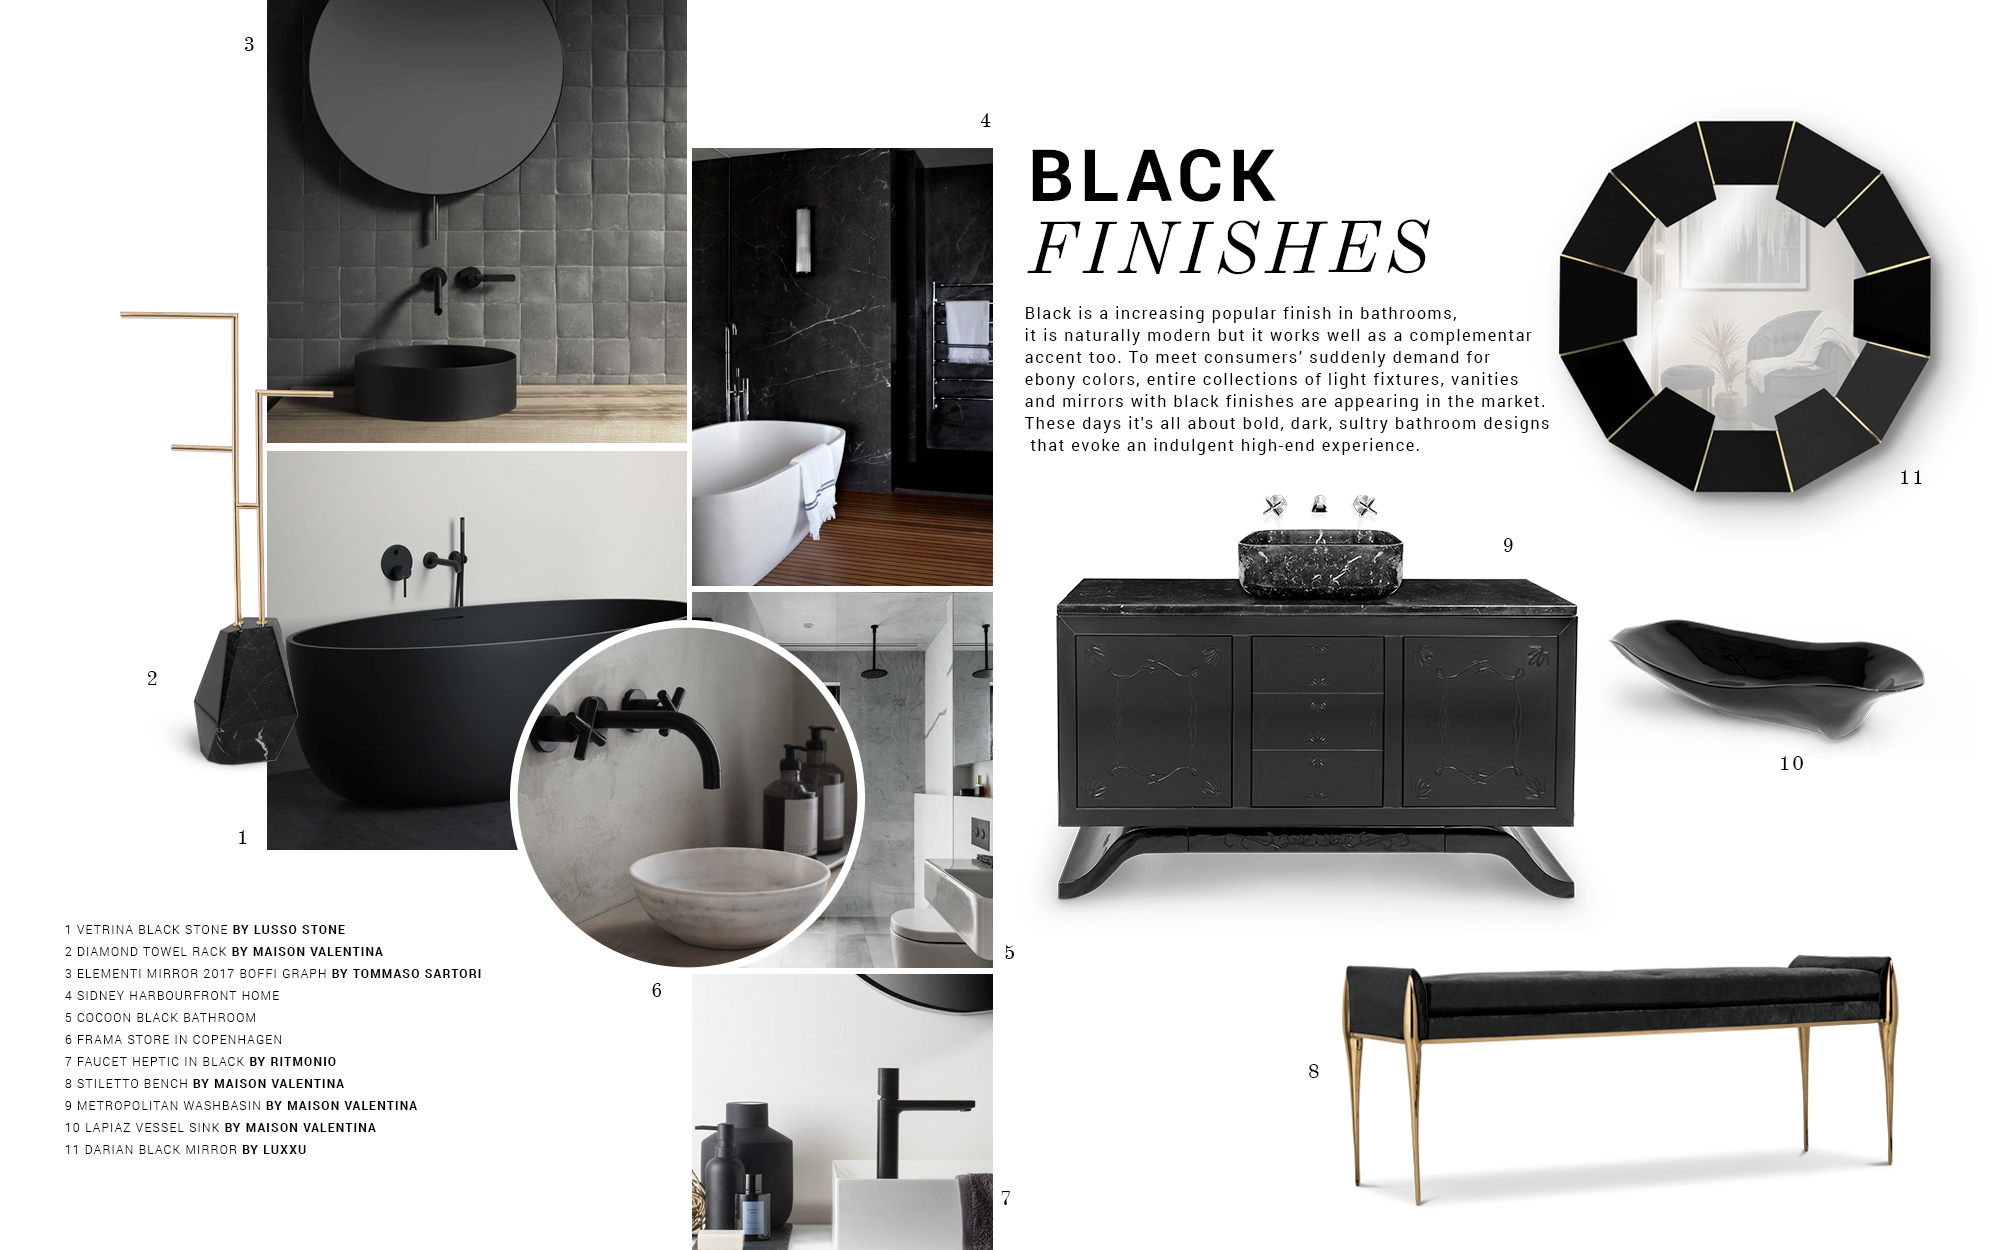 Bathroom Trends: Black Finishes